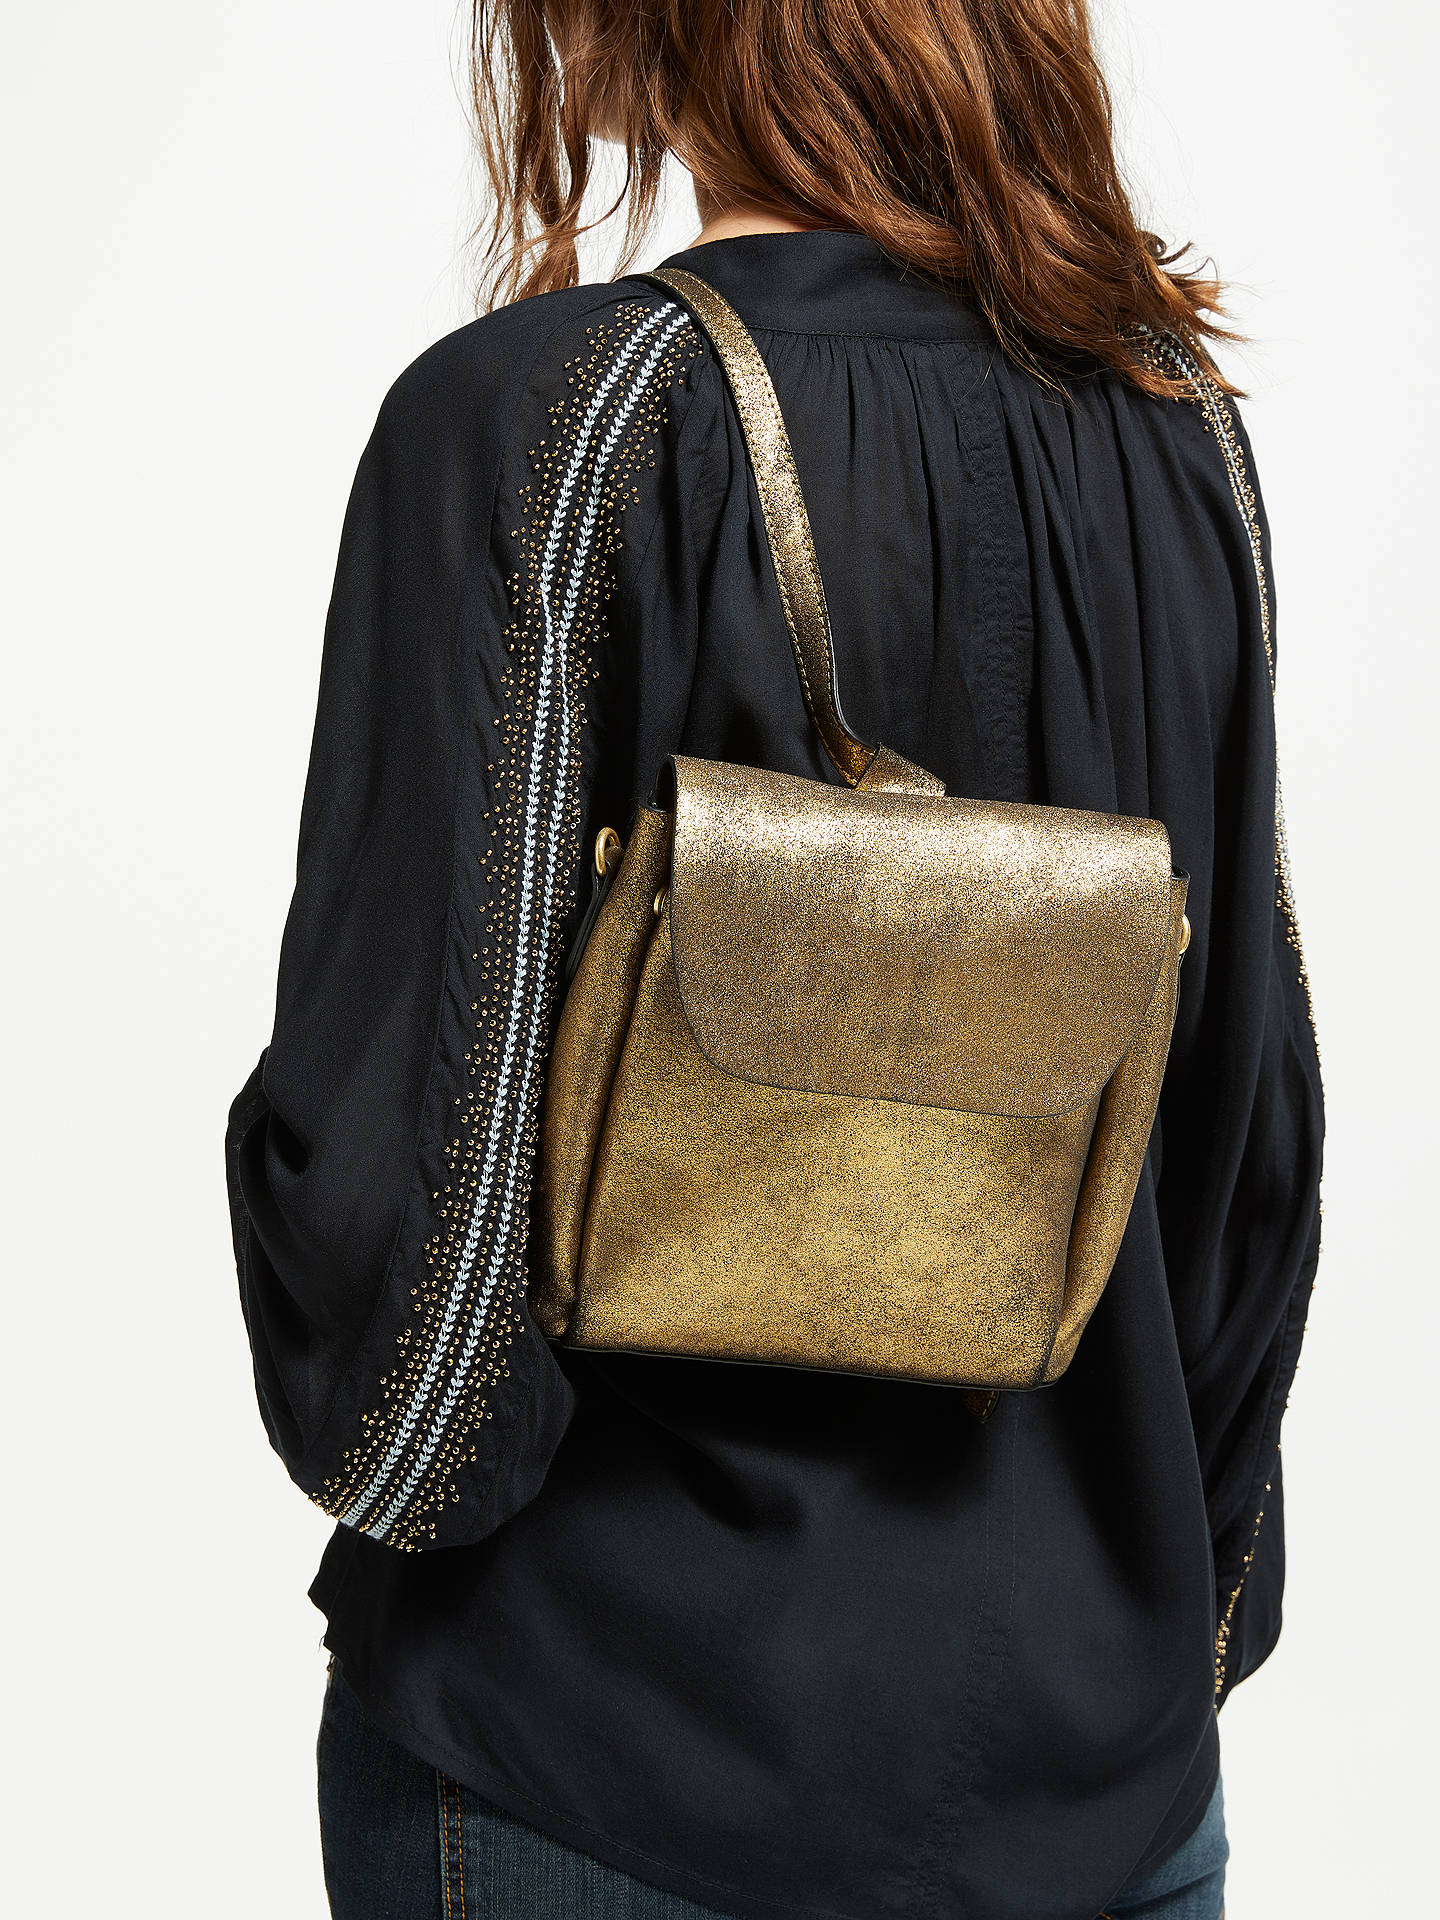 BuyAND/OR Isabella Metallic Mini Leather Backpack, Gold Online at johnlewis.com